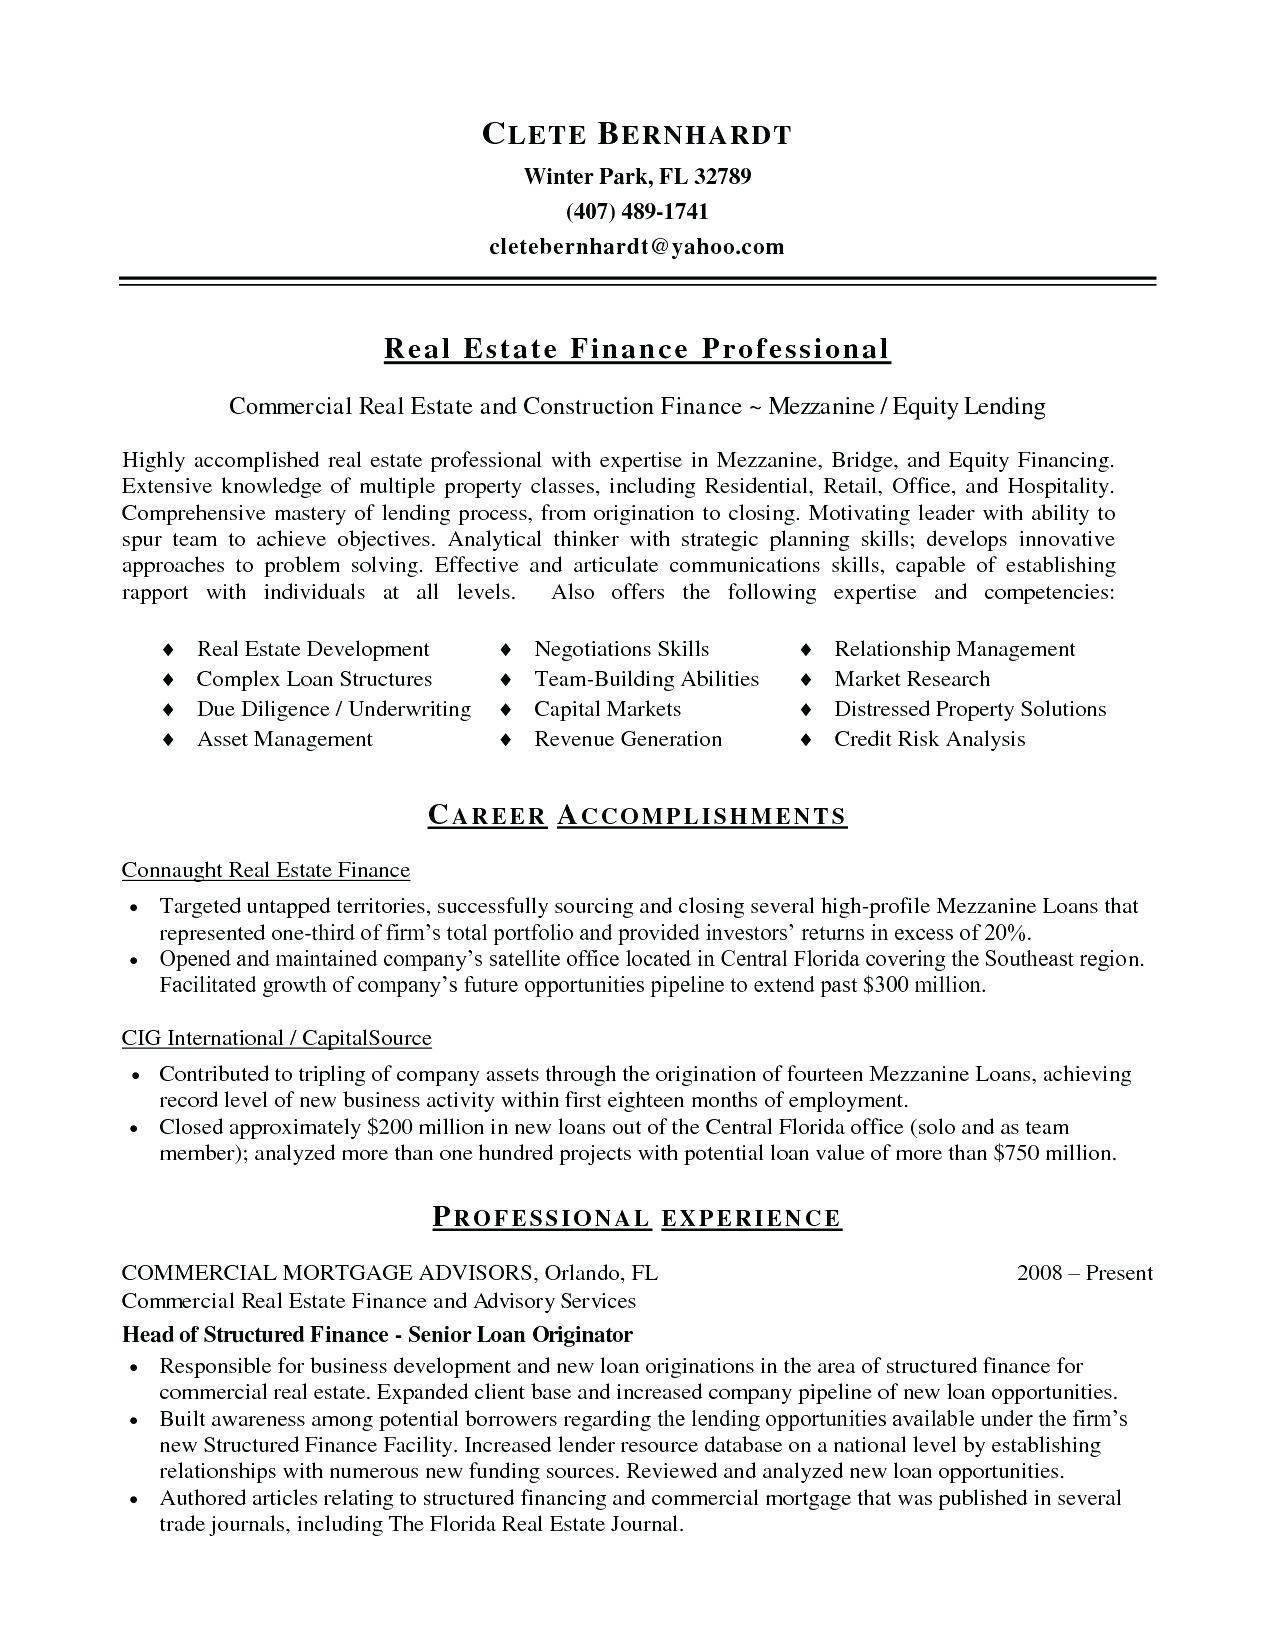 Real Estate Resume Templates